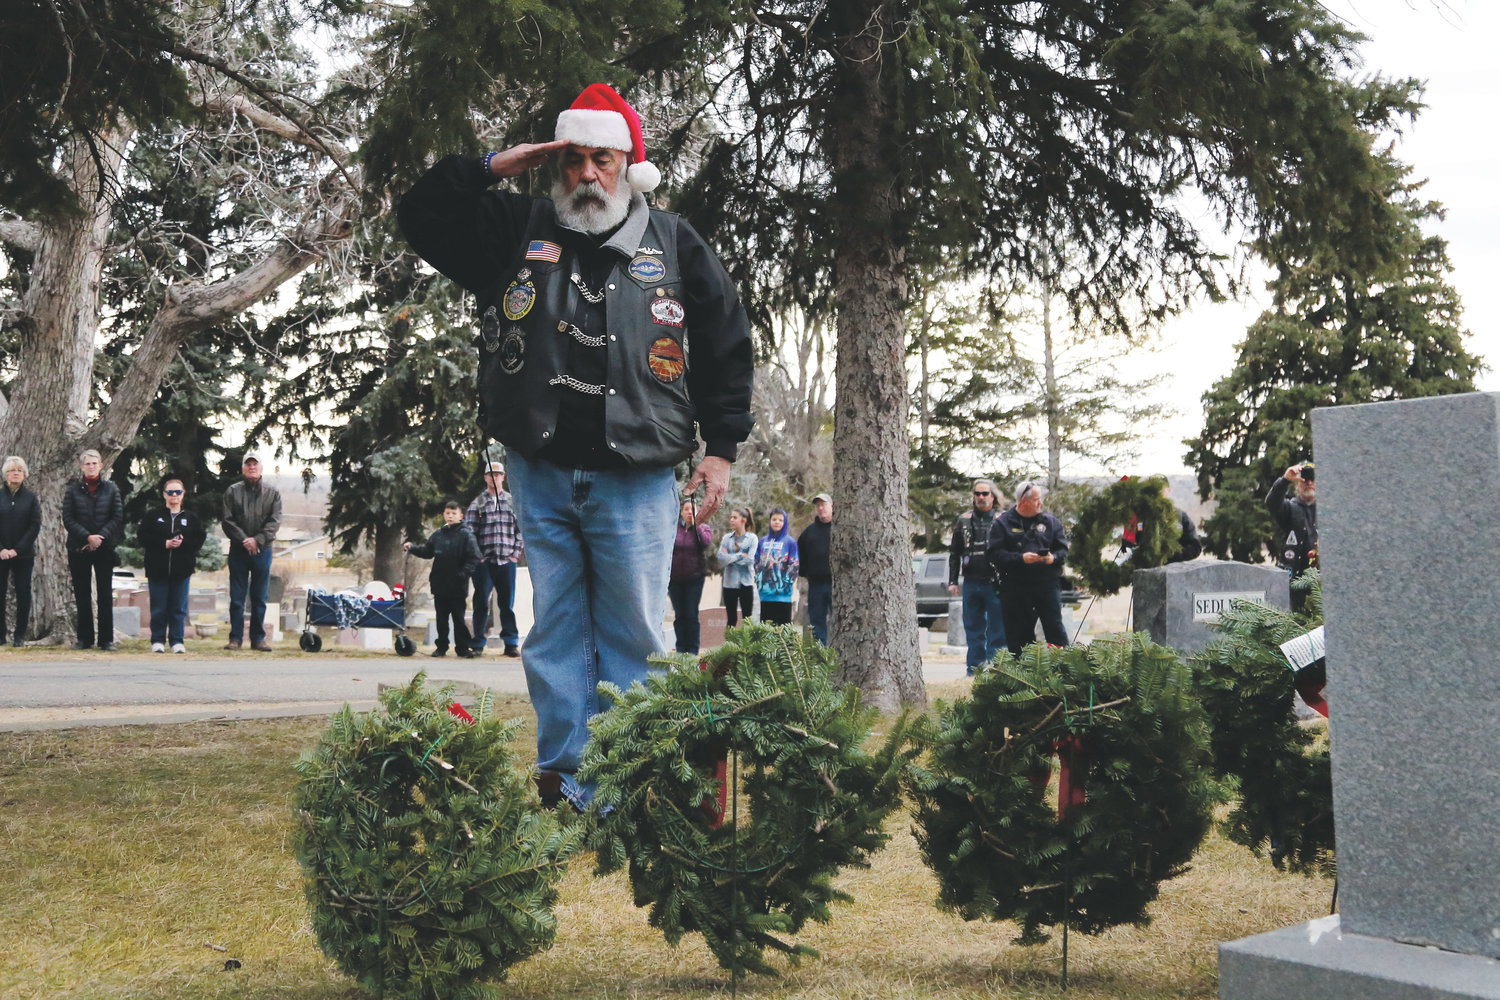 Bruce Weller, U.S. Navy veteran, salutes after placing a wreath in honor of the 93,129 U.S. servicemen from all branches of service whose last known status was either prisoner of war or missing in action.